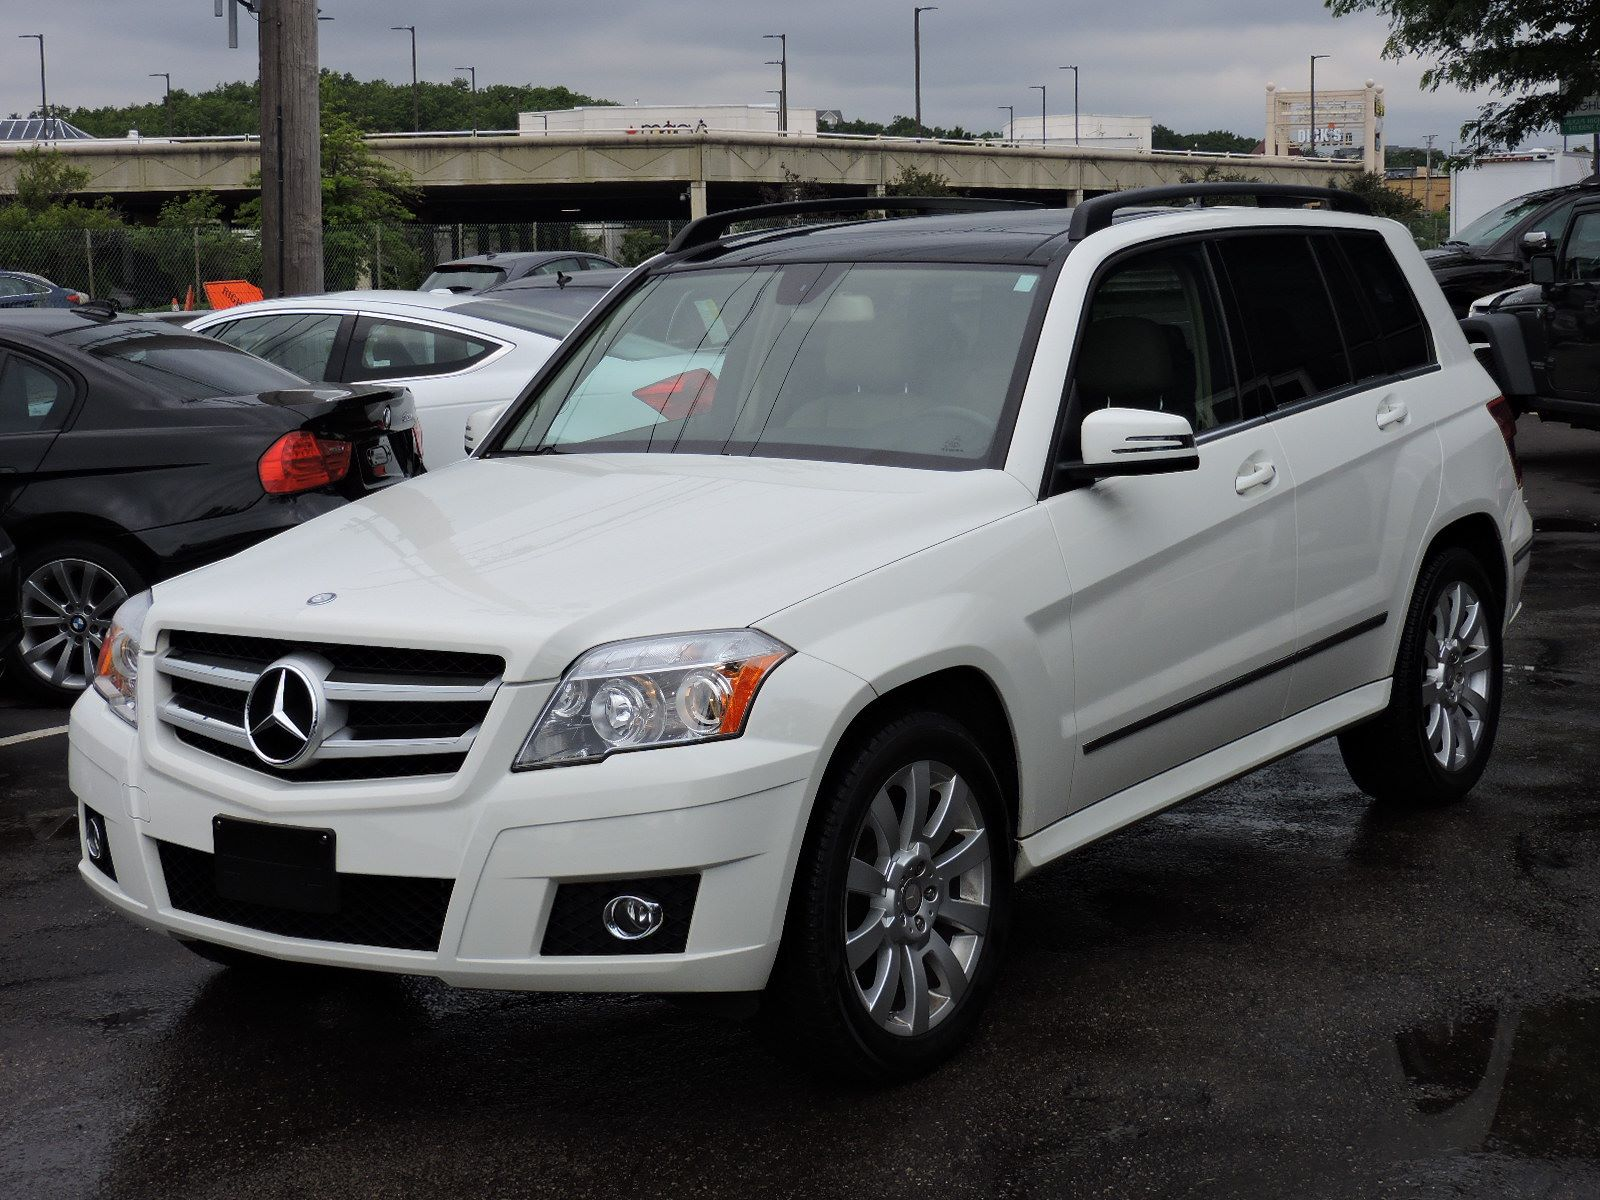 D1ssz Replacement Instructions Glk 350 Engine Diagram 2013 Mercedes Benz Glk350 Parts And Accessories